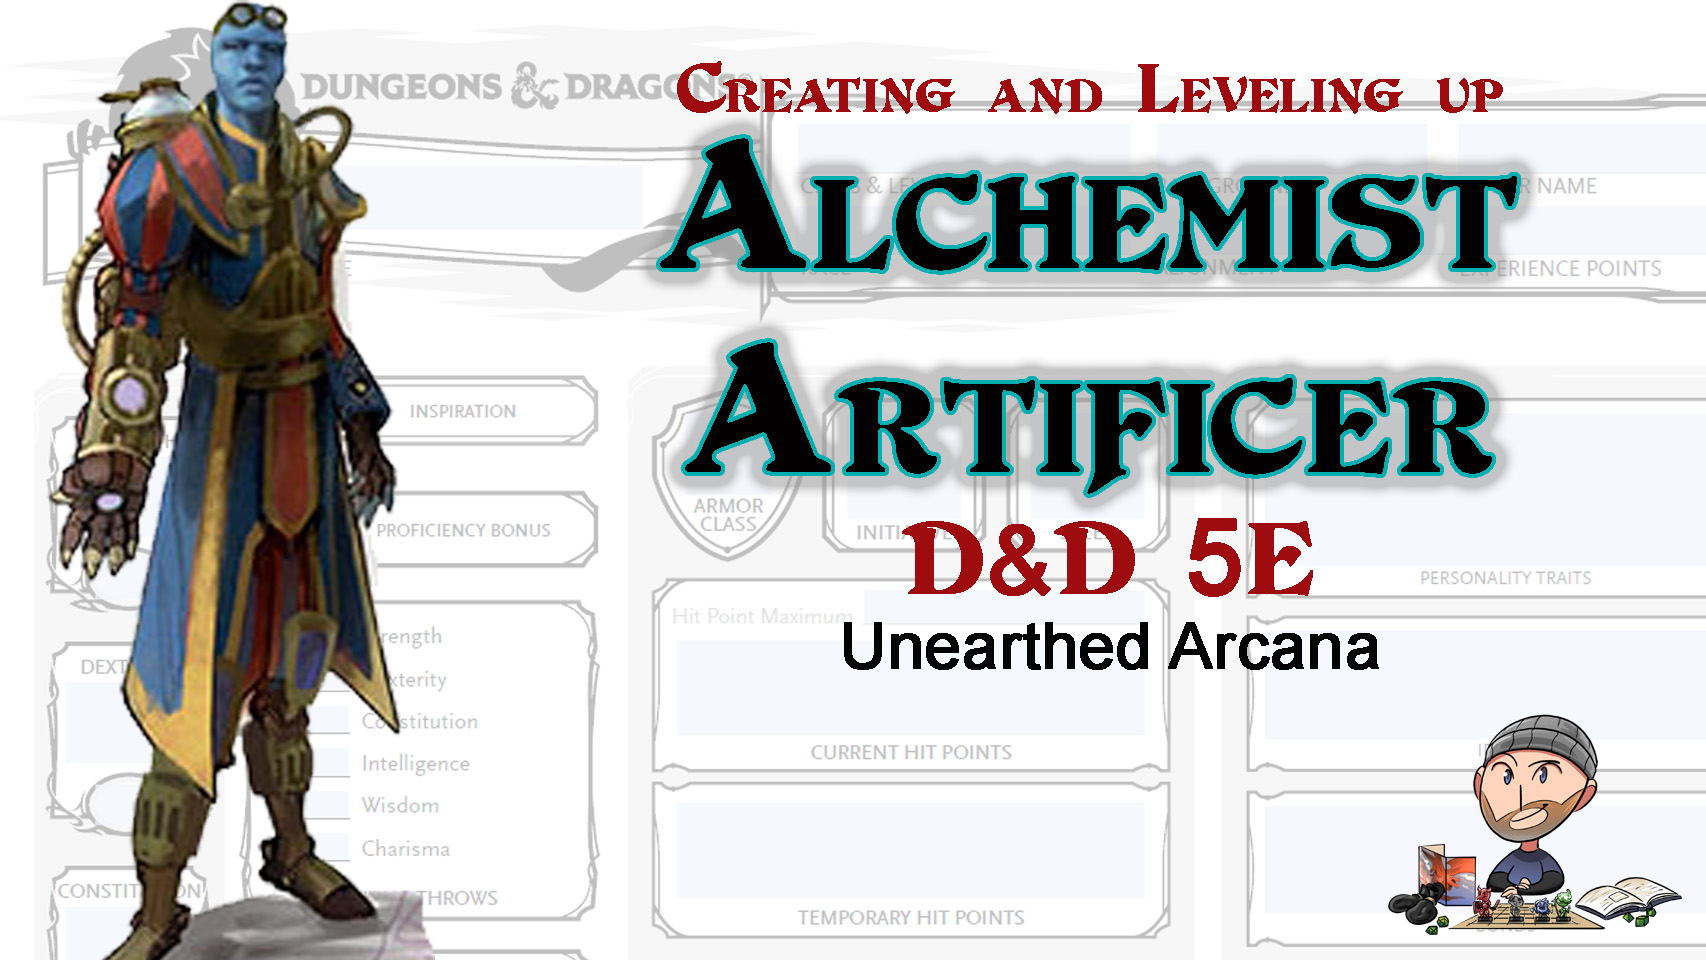 D&D 5E Alchemist Artificer Build – 2019 Unearthed Arcana